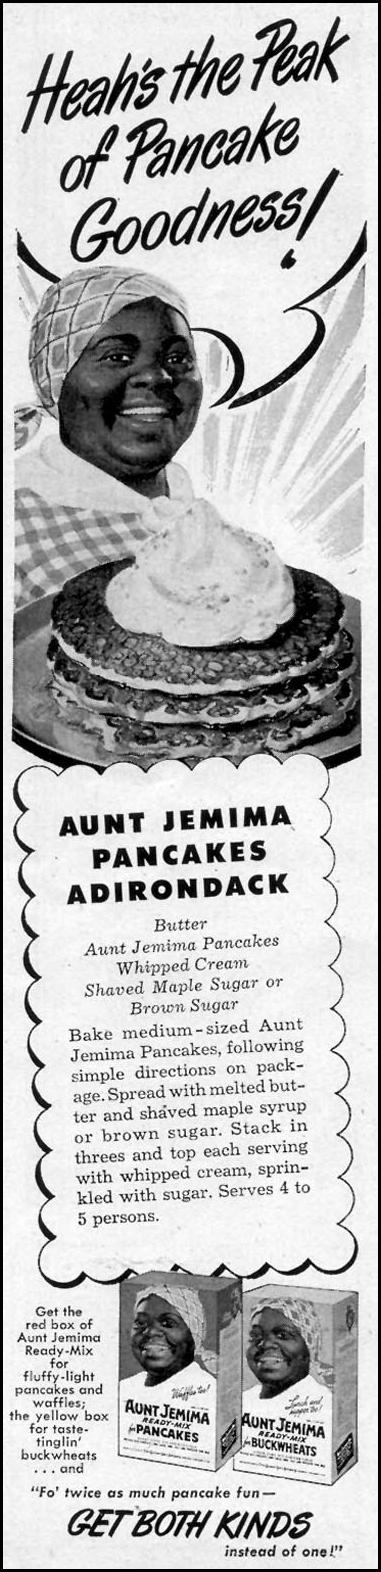 AUNT JEMIMA READY-MIX PANCAKES